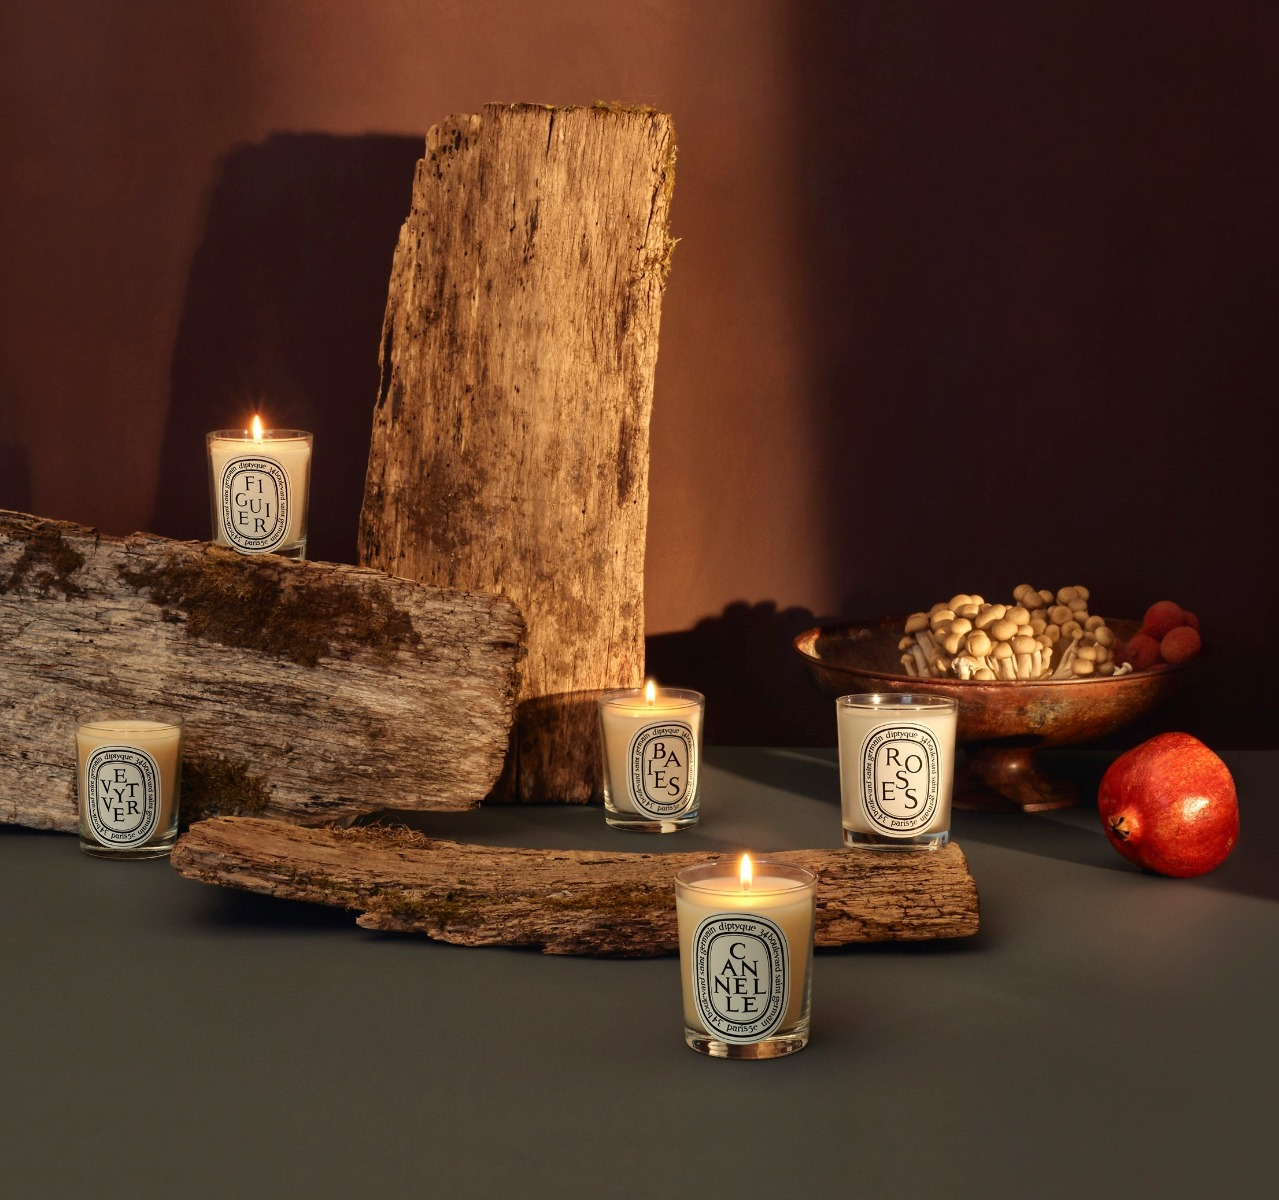 Image of standard candles